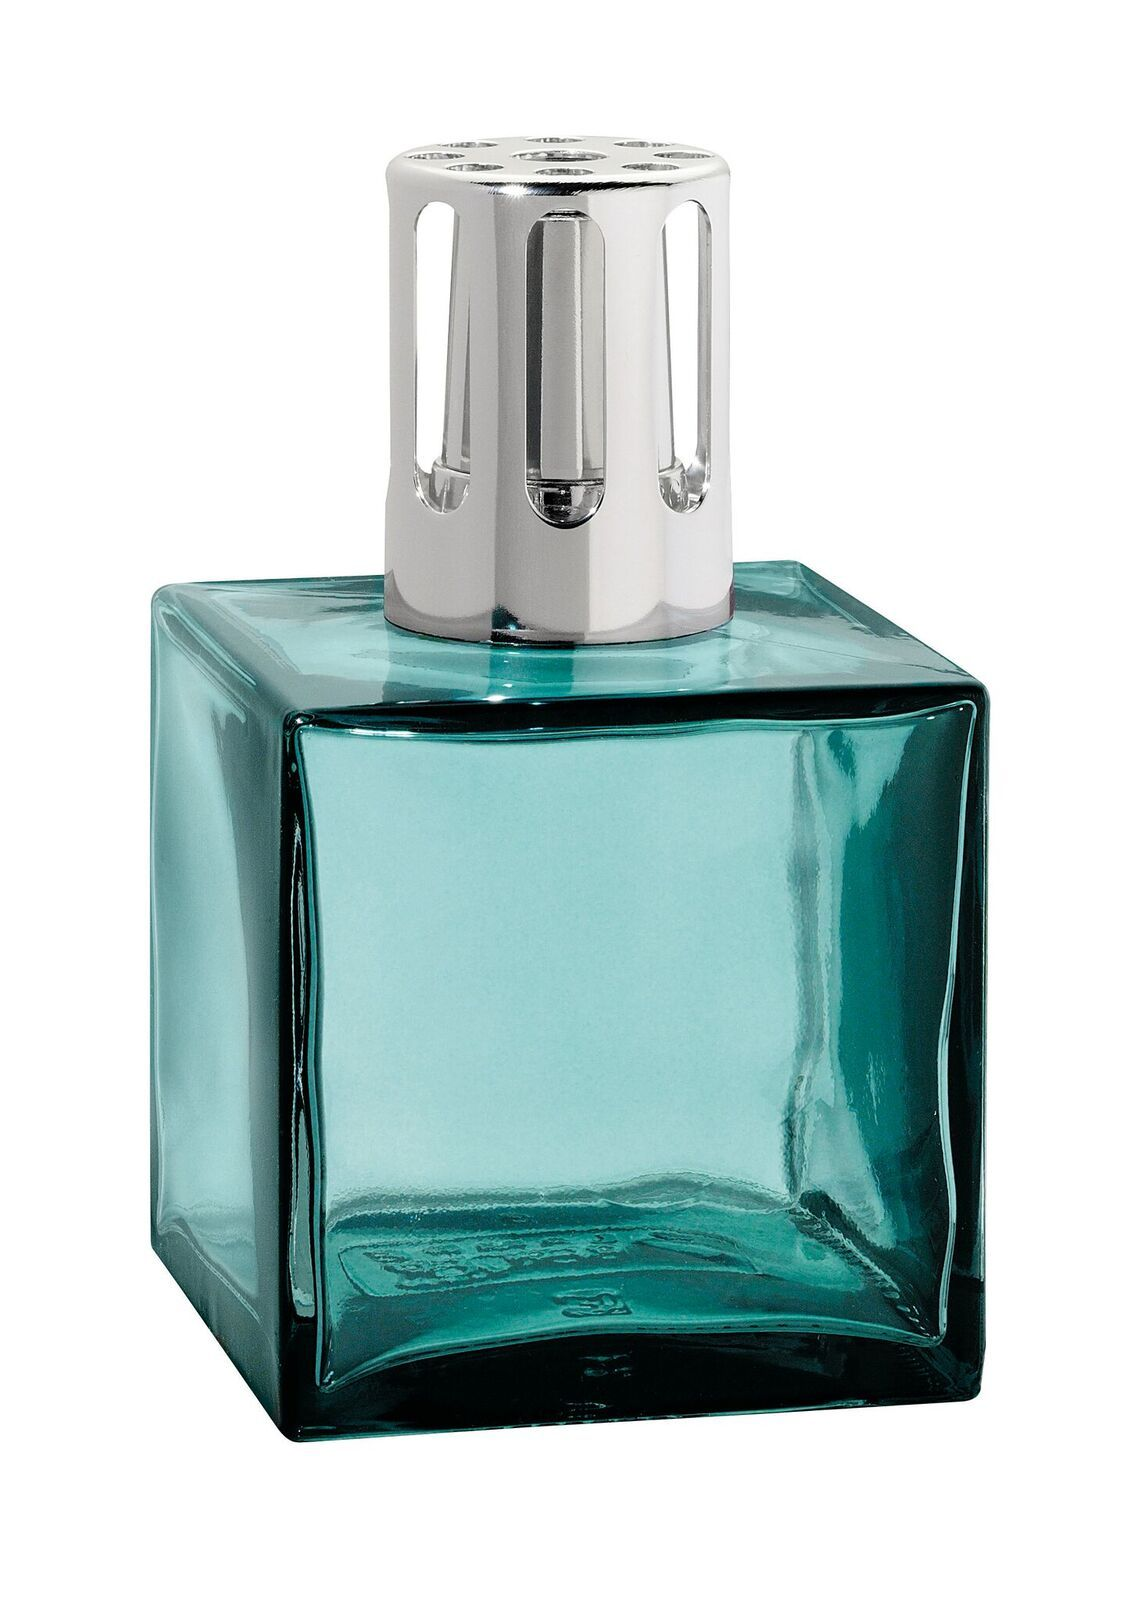 Cube Turquoise Lampe Berger Fragrance Lamp Blue Lamp Fragrance Diffuser Candle Lamps